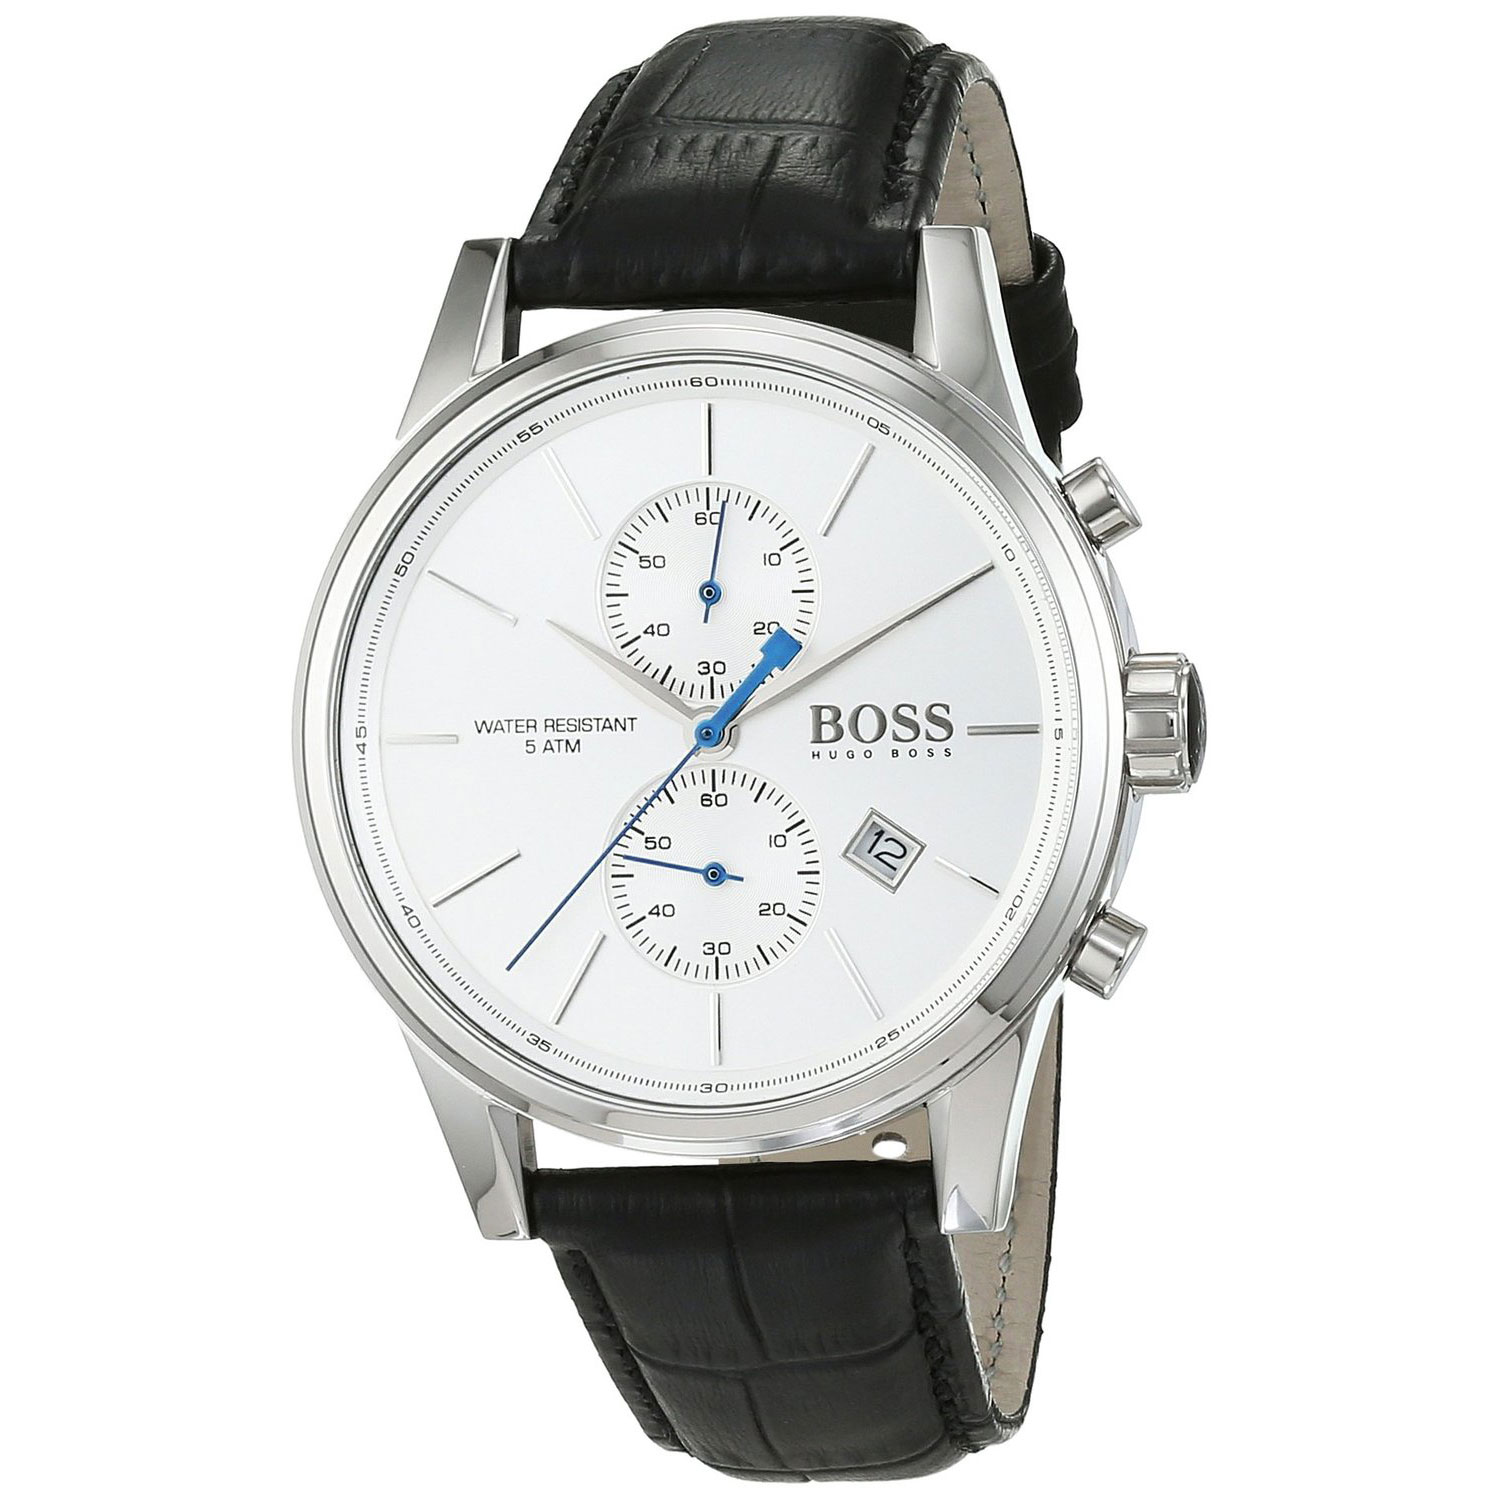 Hugo Boss Watch With Stainless Steel And Black Leather Strap 1513282